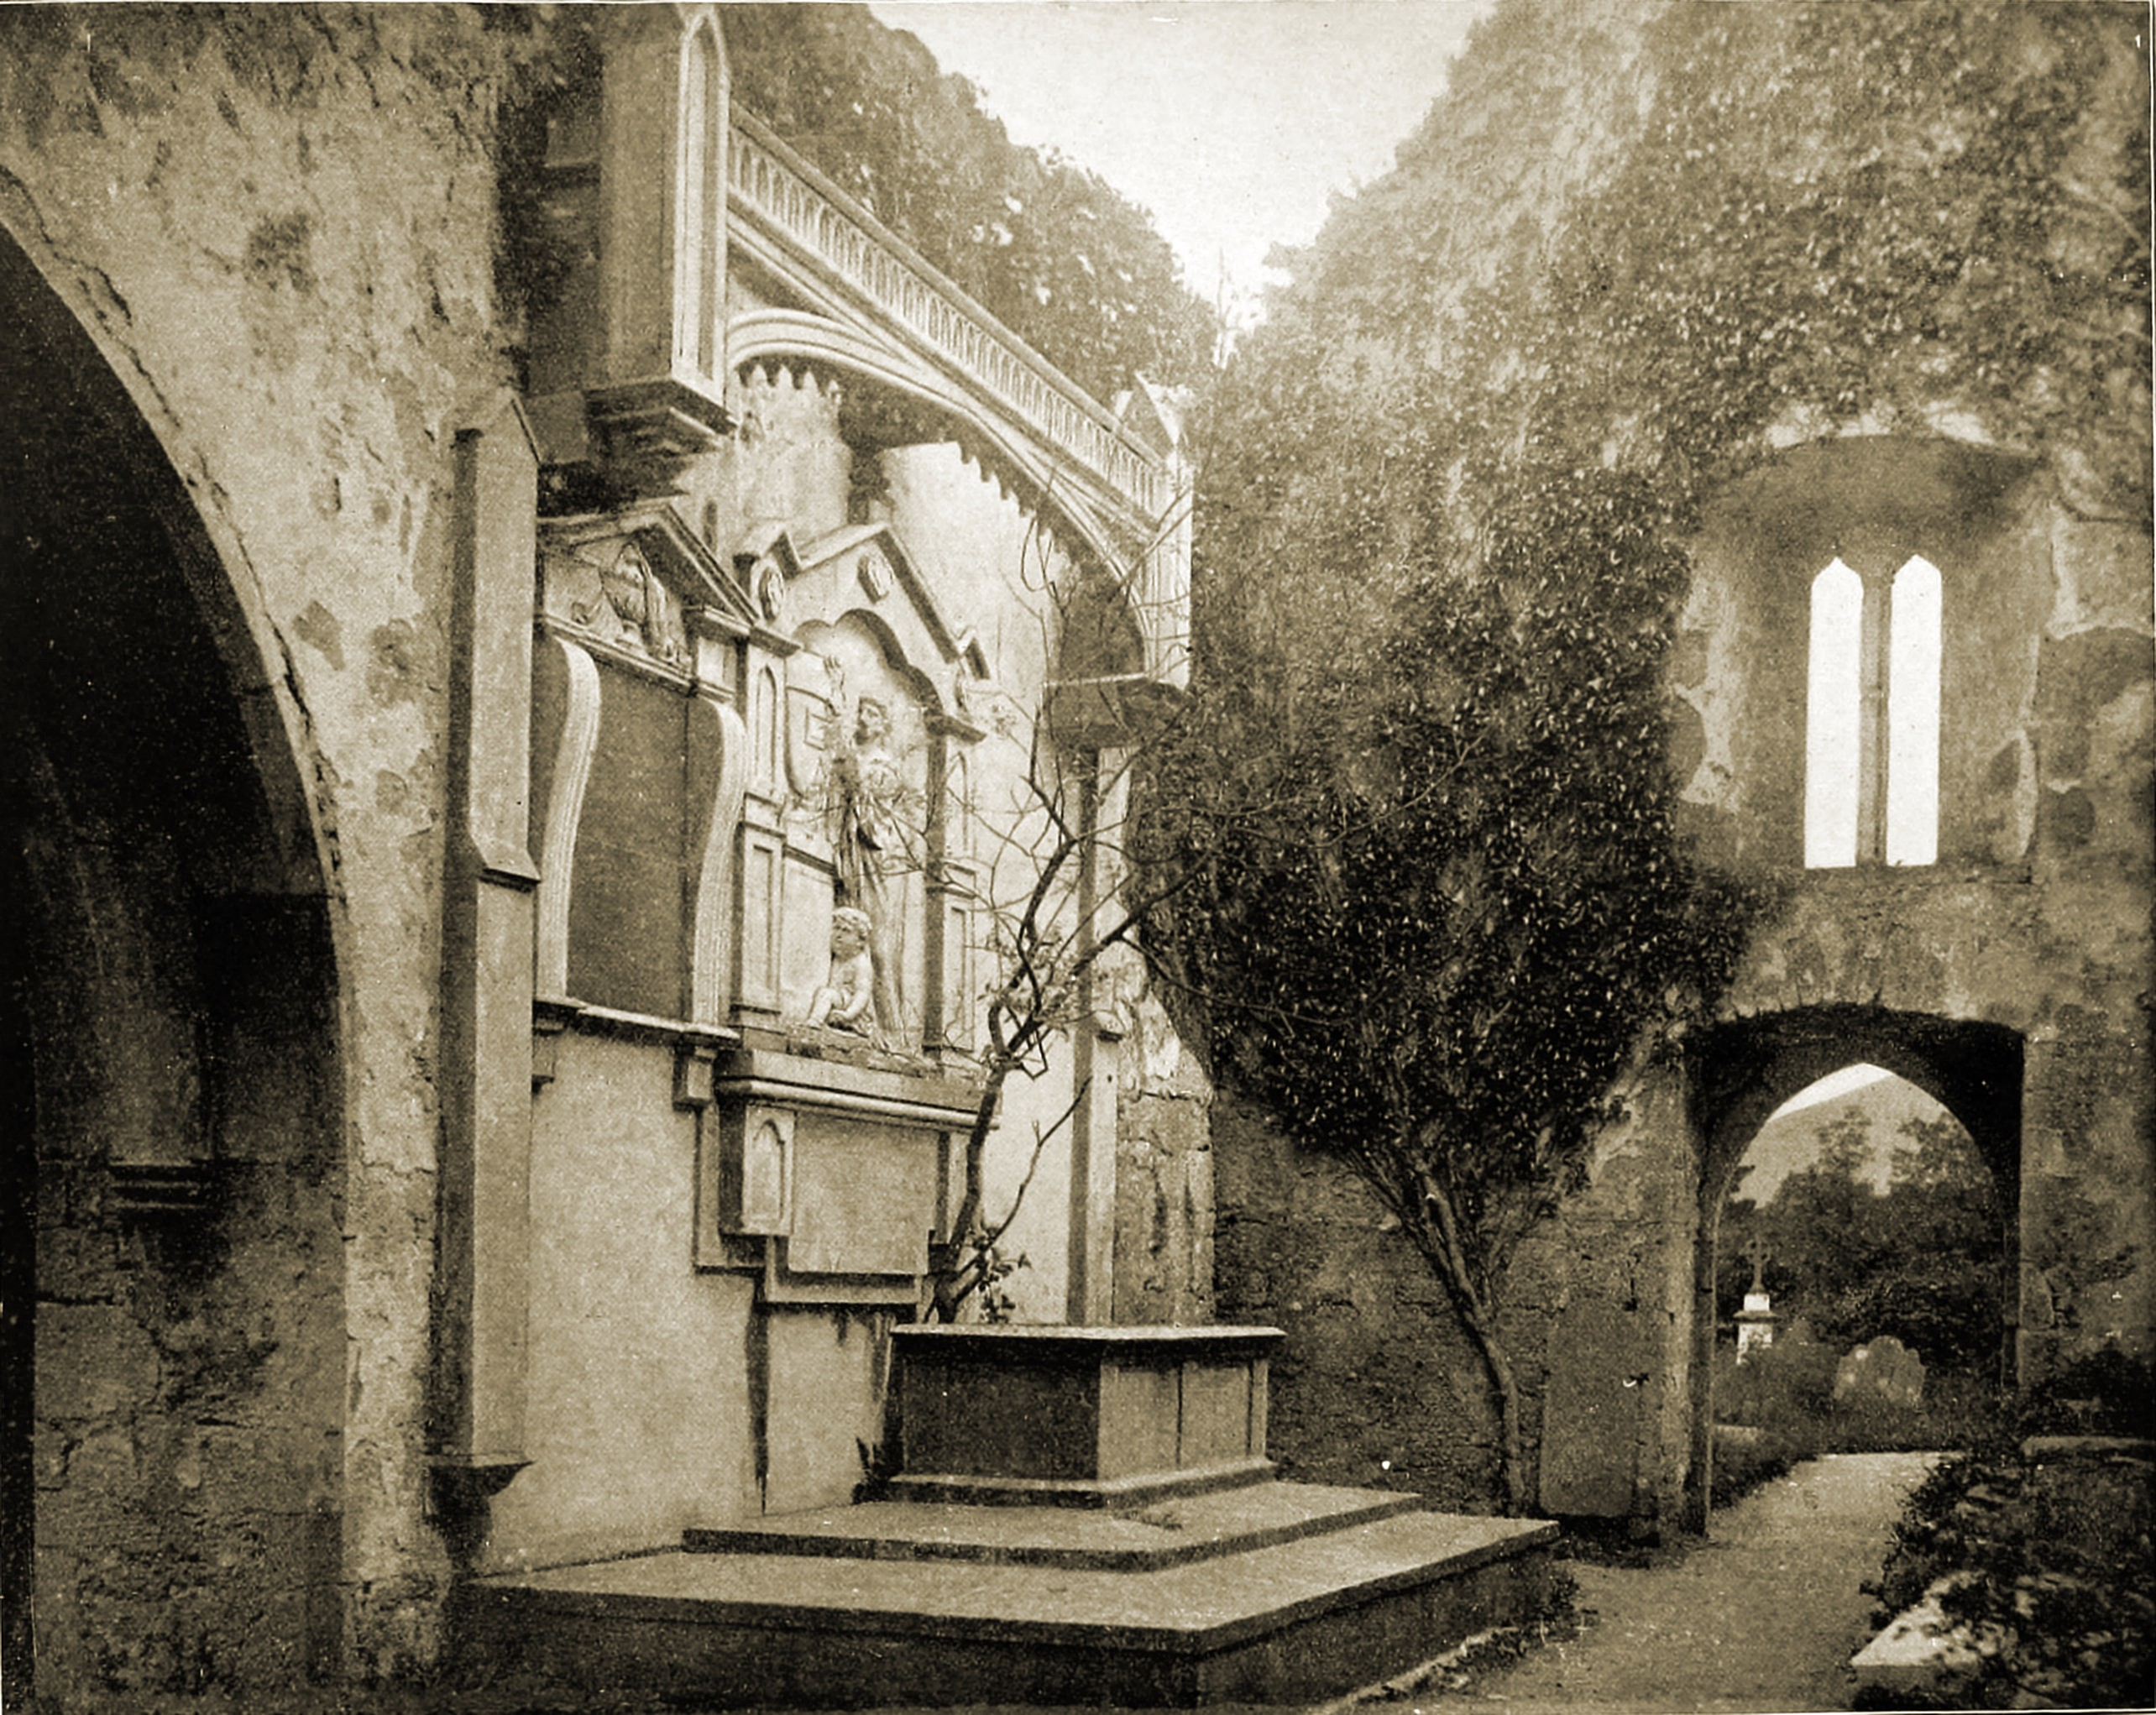 Muckross Abbey Lakes of Killarney Ireland 1892